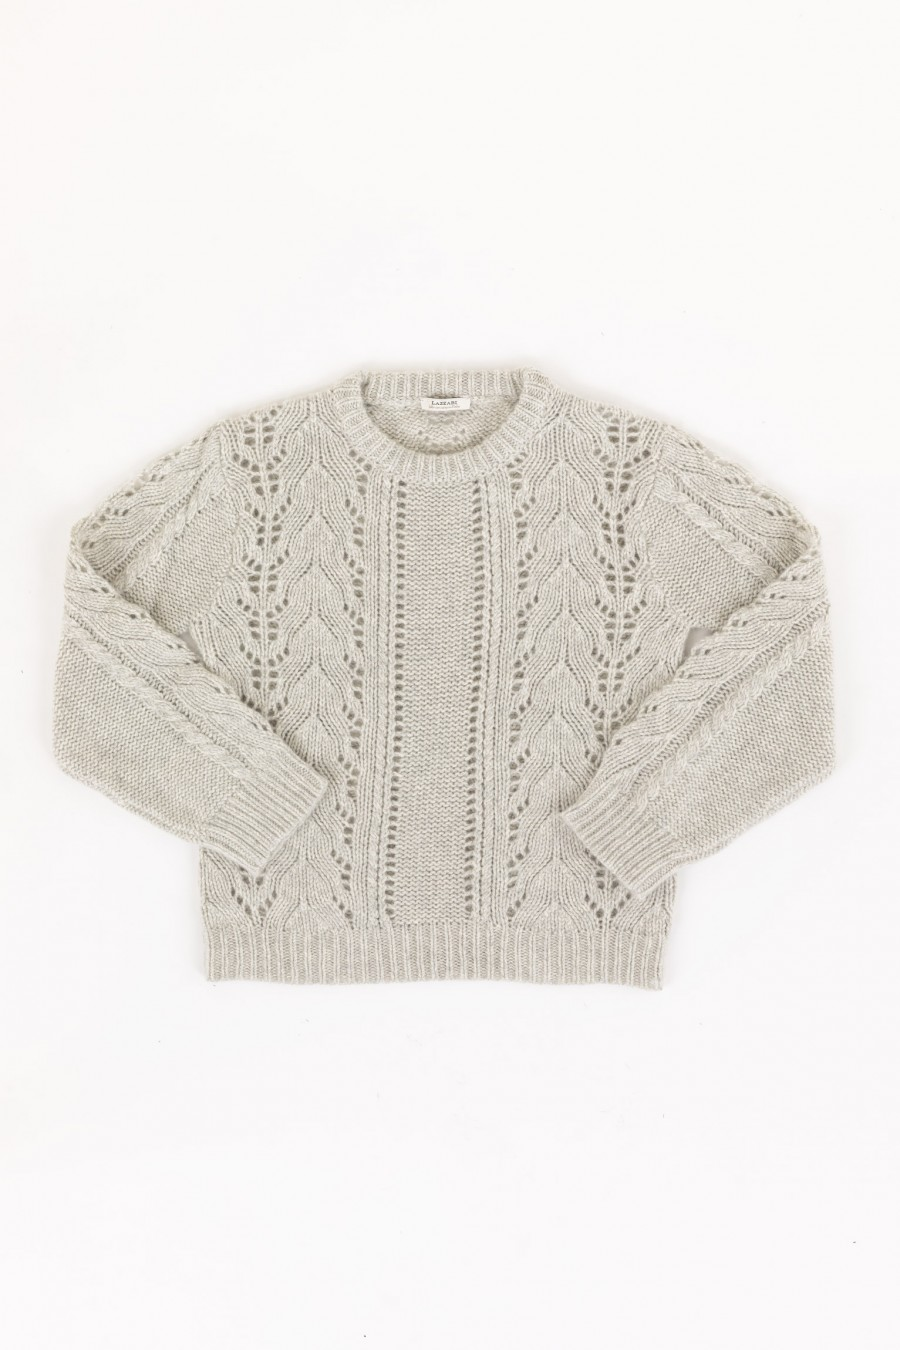 Openwork grey jumper